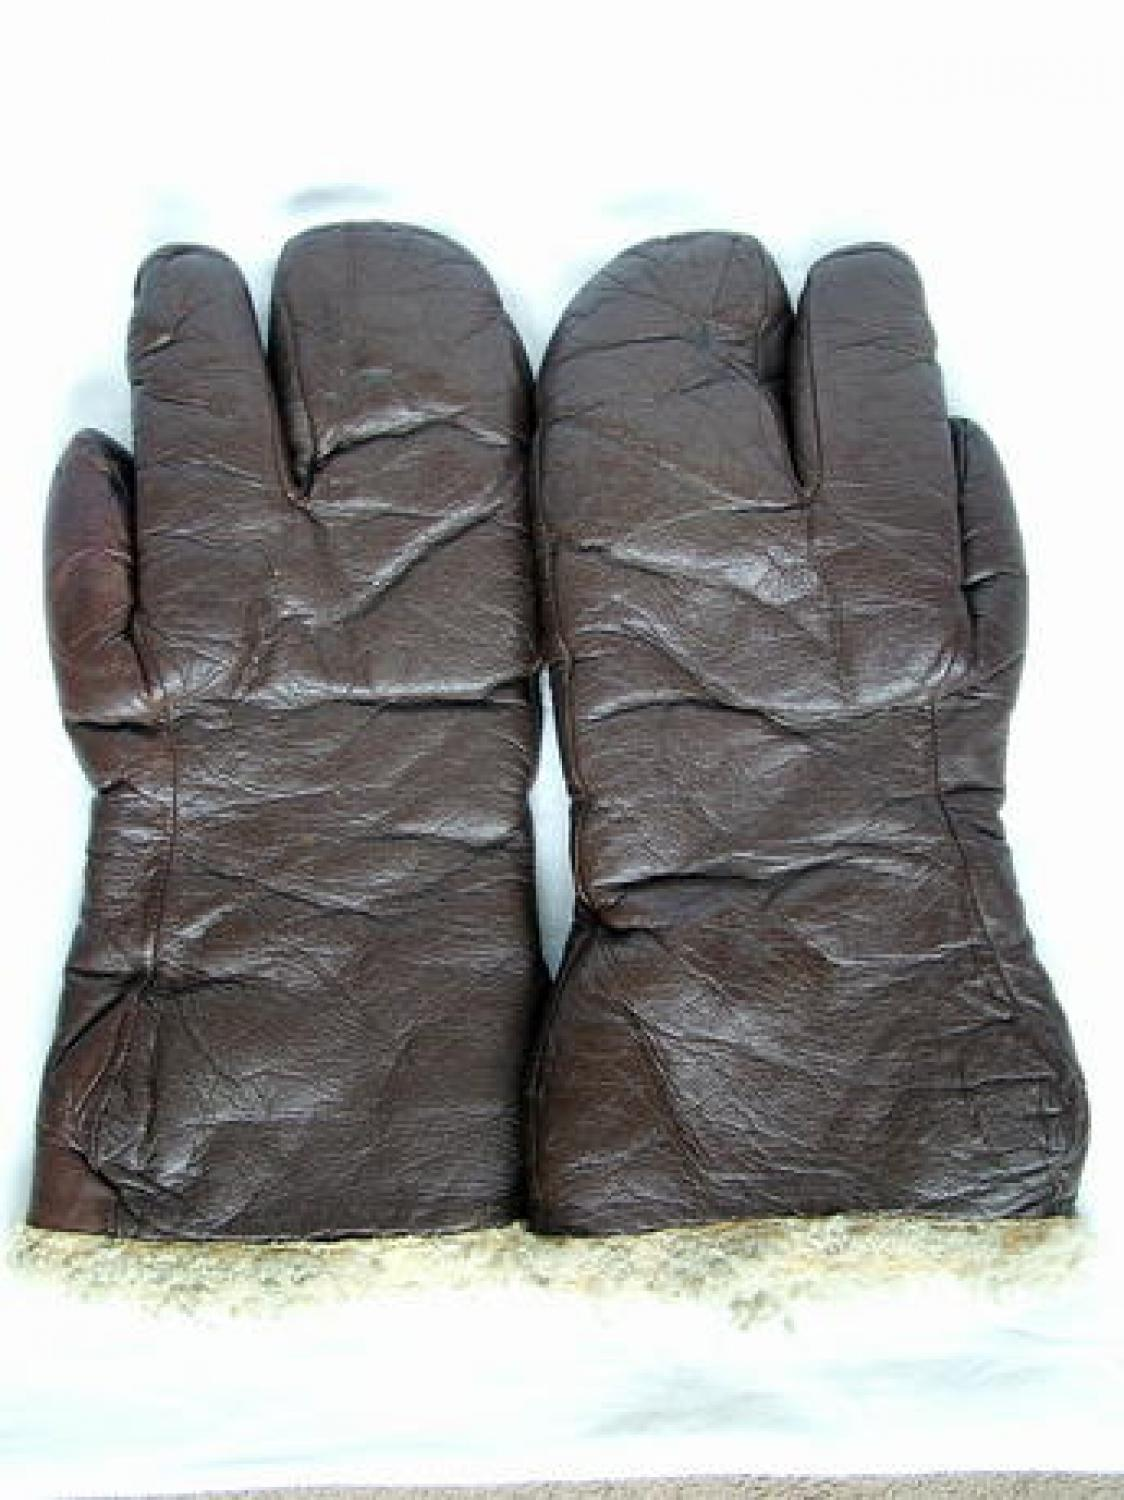 USAAF A-9 Flying Gauntlets/Gunners Mitts